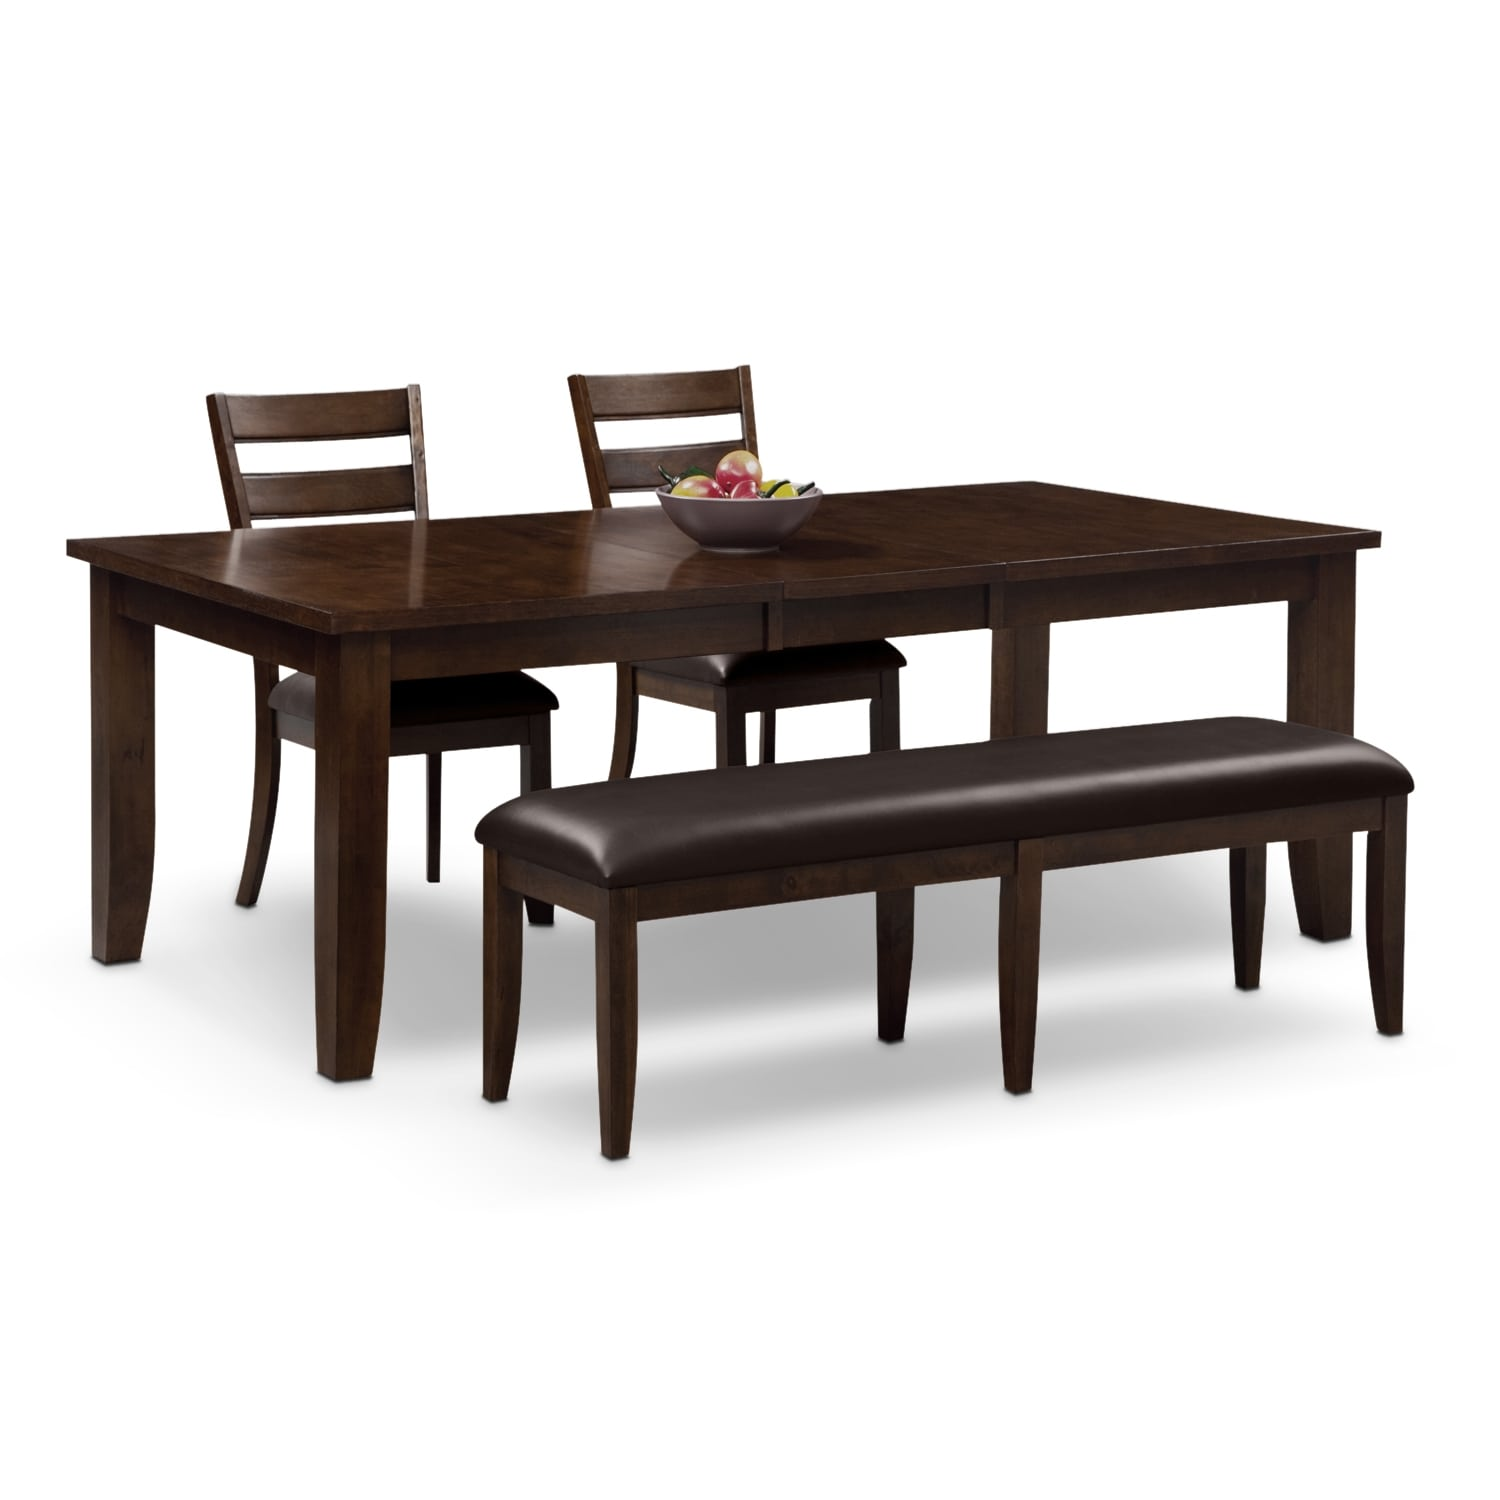 Abaco table 2 chairs and bench brown value city for Dining room table for 2